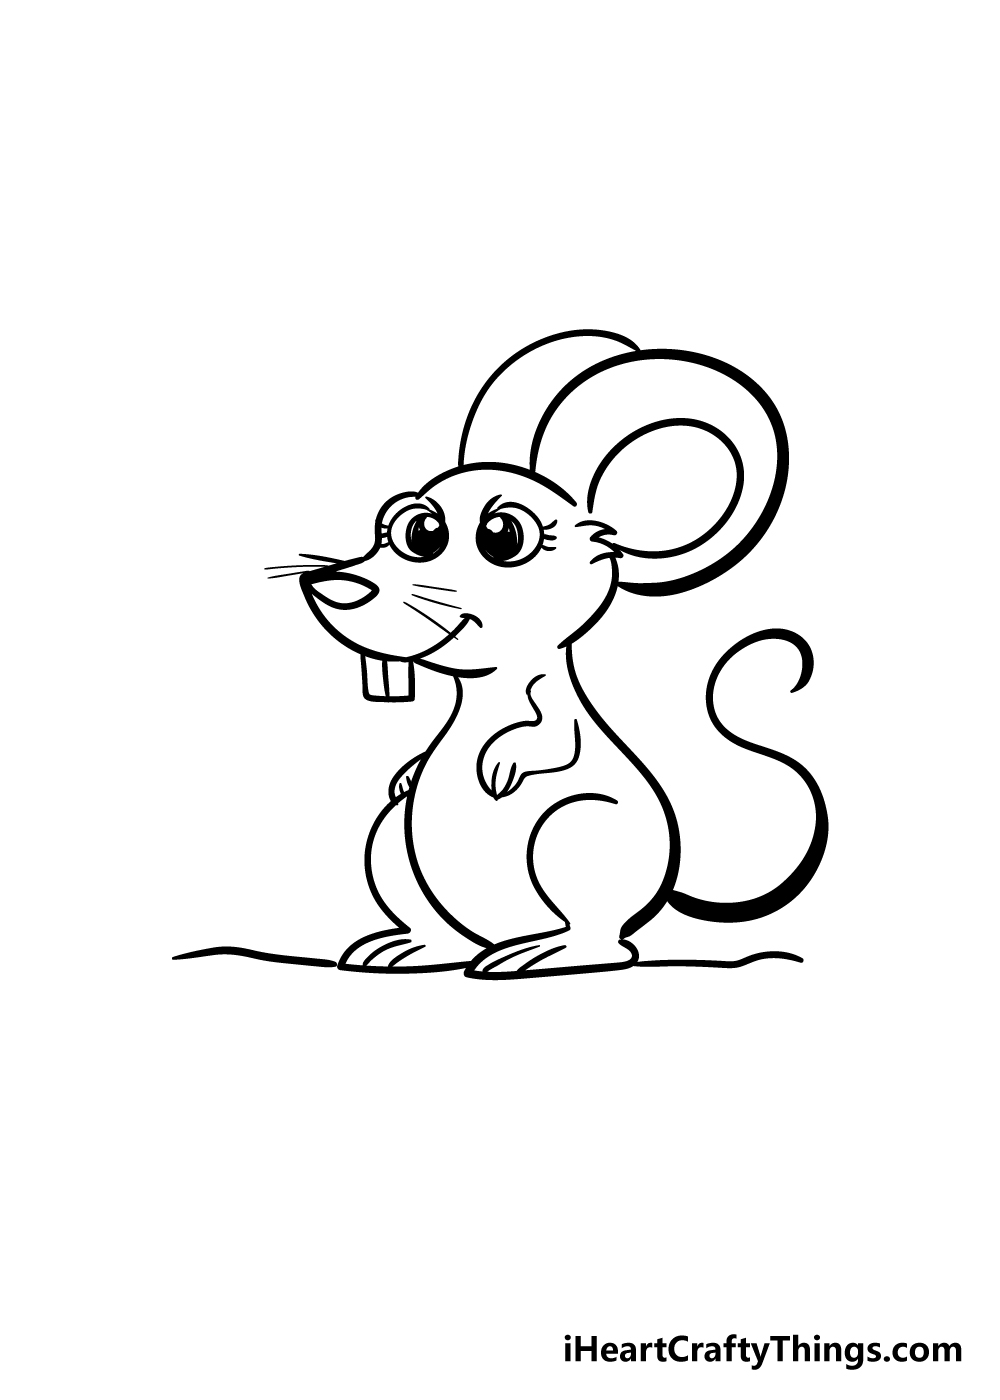 mouse drawing step 7